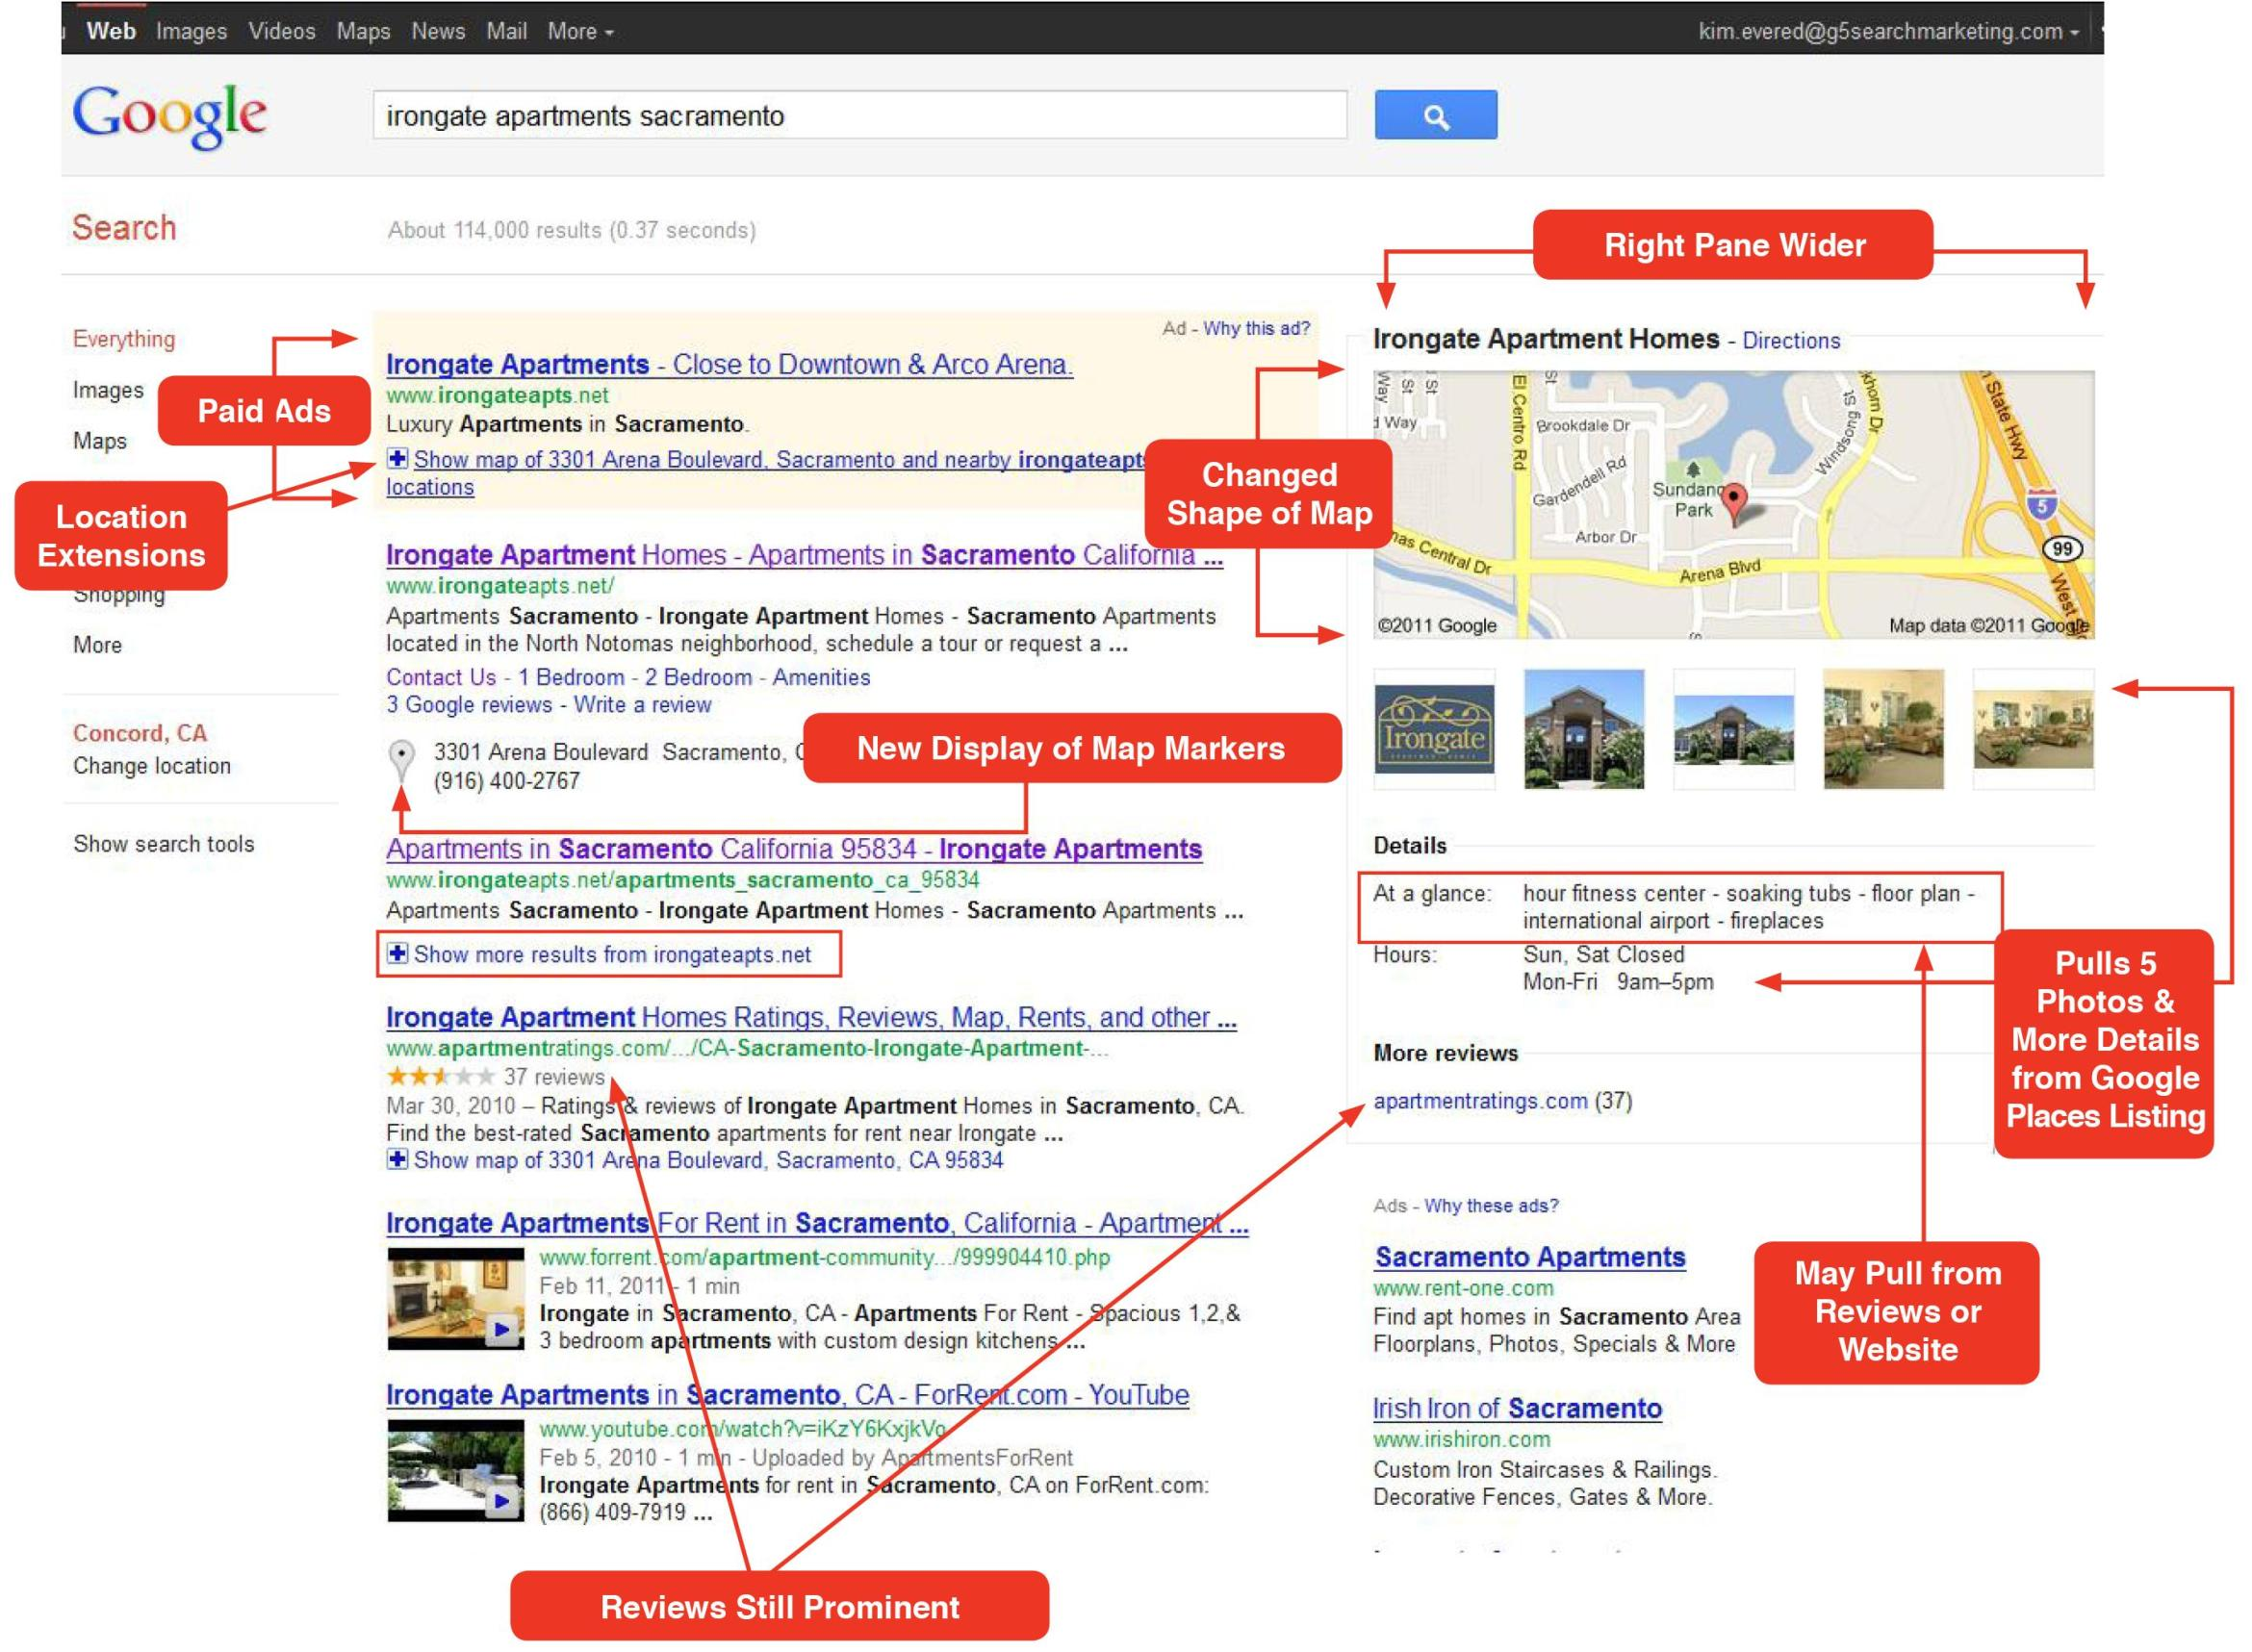 SERPS-november2011-changes.jpg